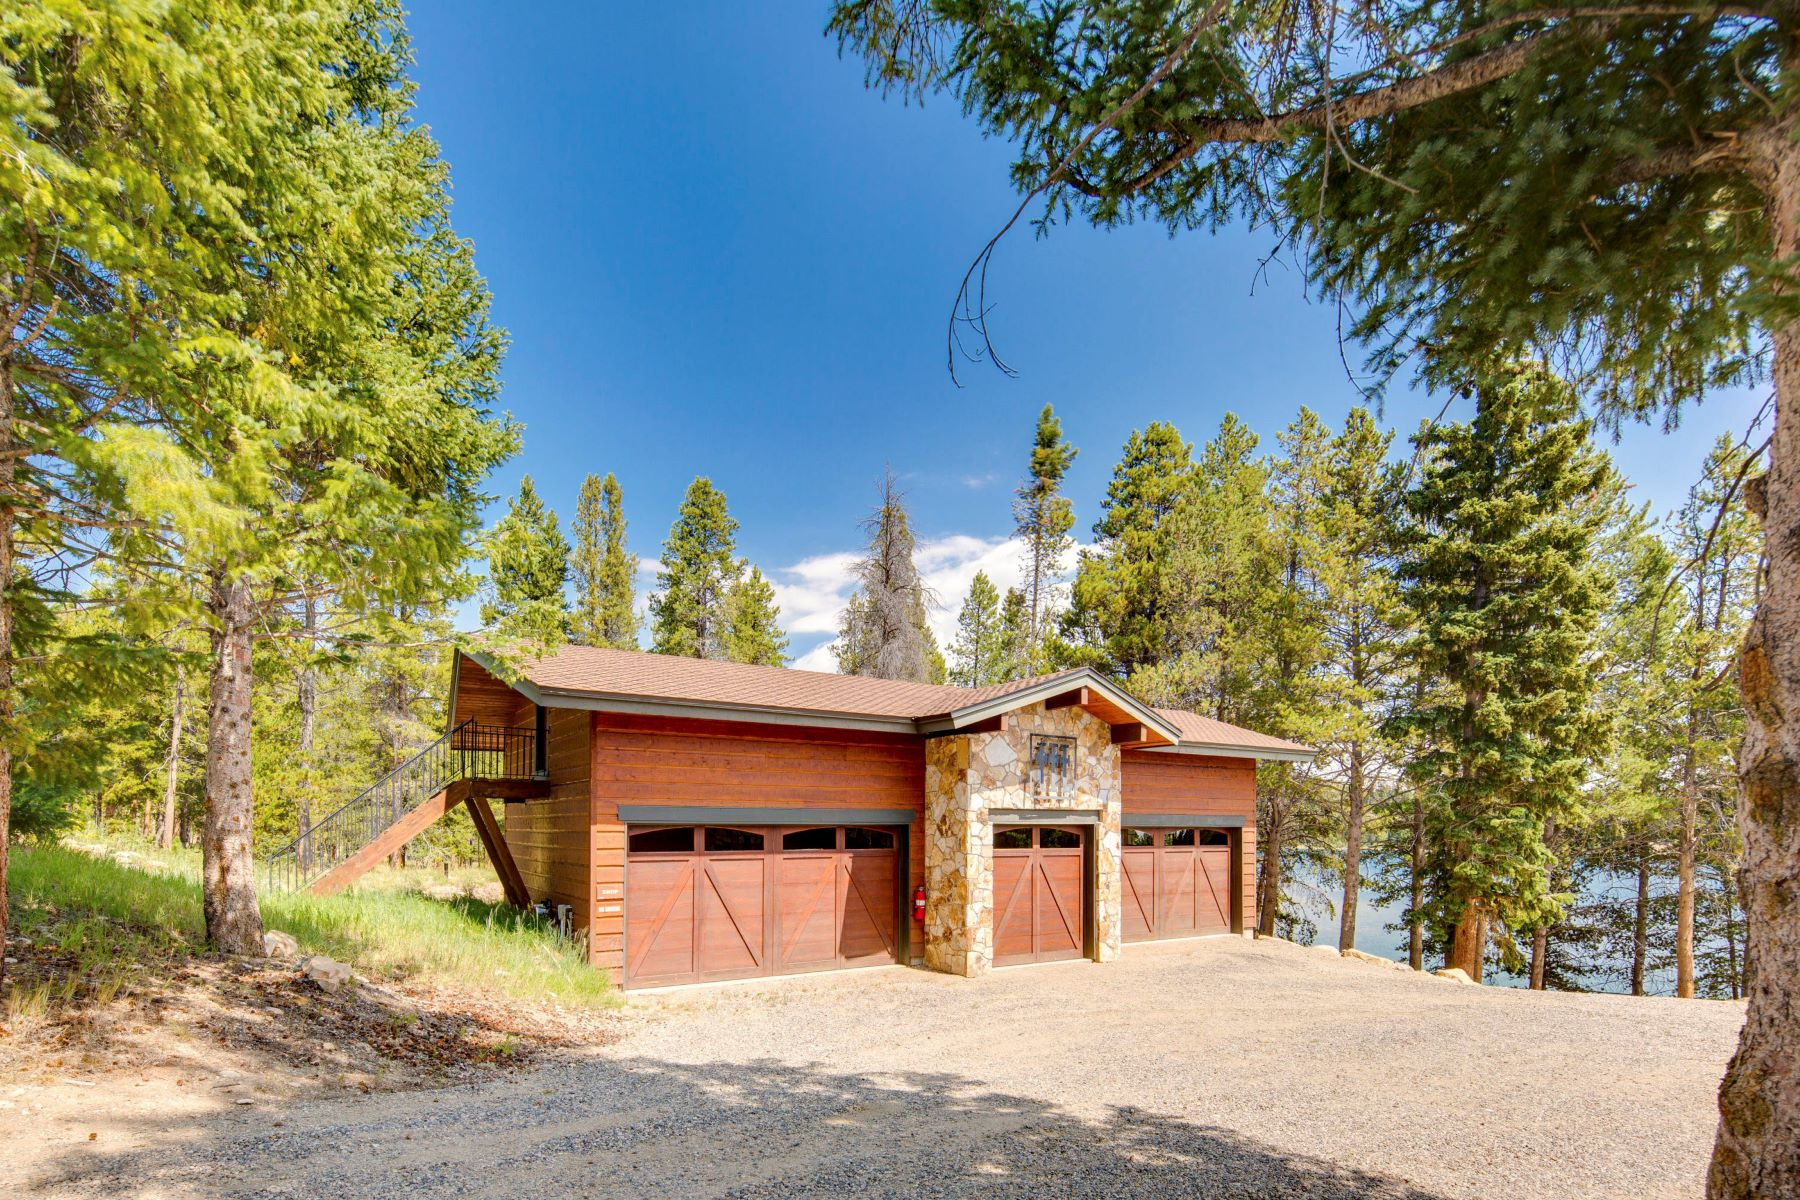 Additional photo for property listing at Rabbit Ears Lodge 2596 County Road 186 Kremmling, Colorado 80459 United States